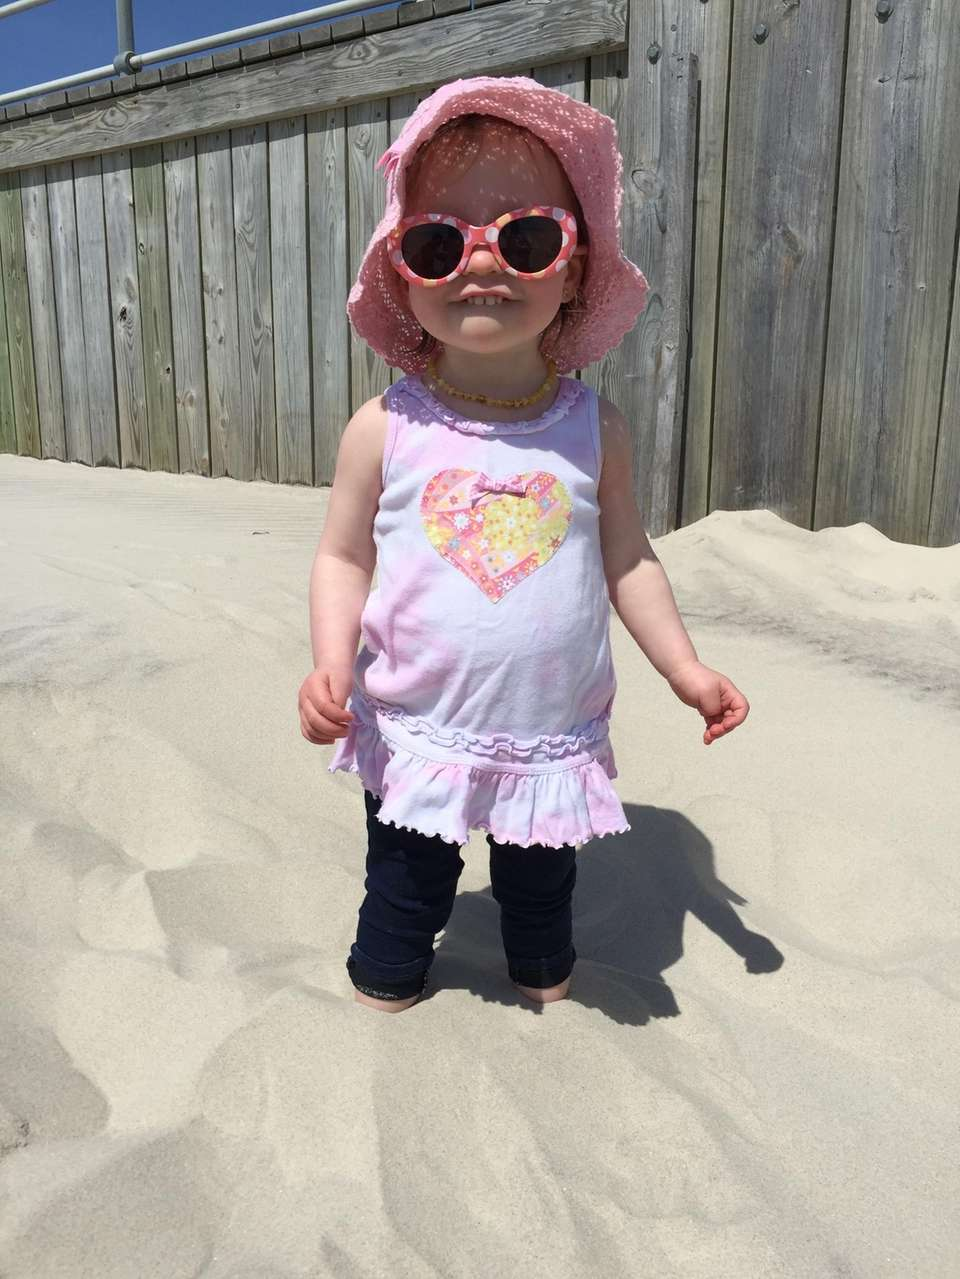 Amelie experiences putting her toes in the sand